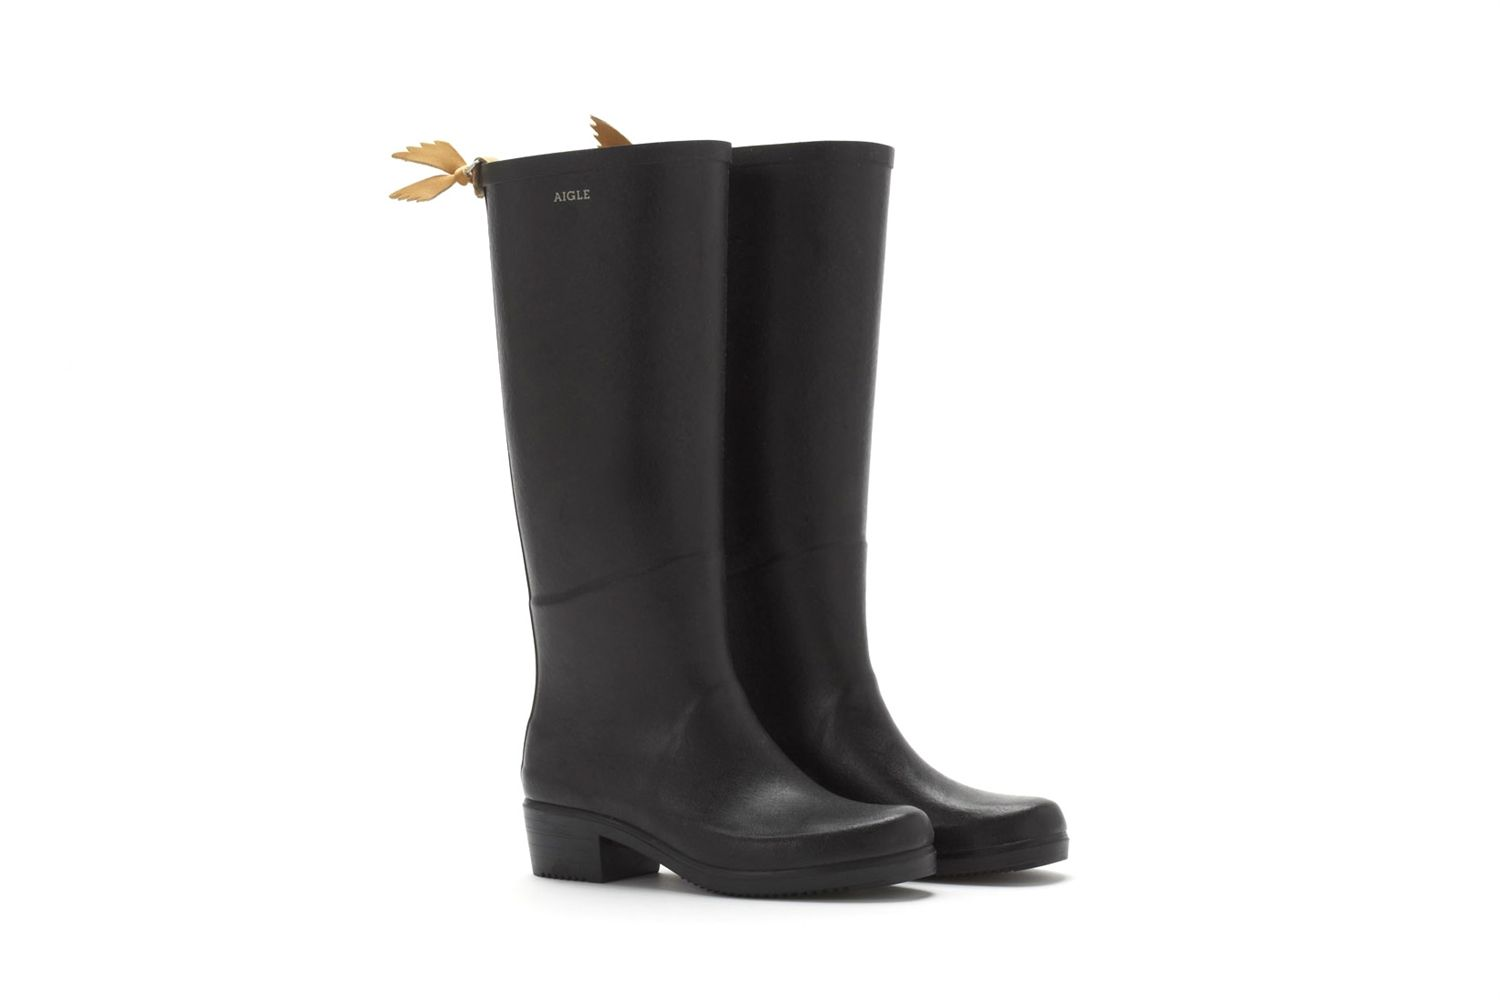 Aigle Boots Miss Juliette - Black, ON SALE NOW!! $140 Perfect for the nasty, muggy, cold and rainy weather.. hommelafemme.com